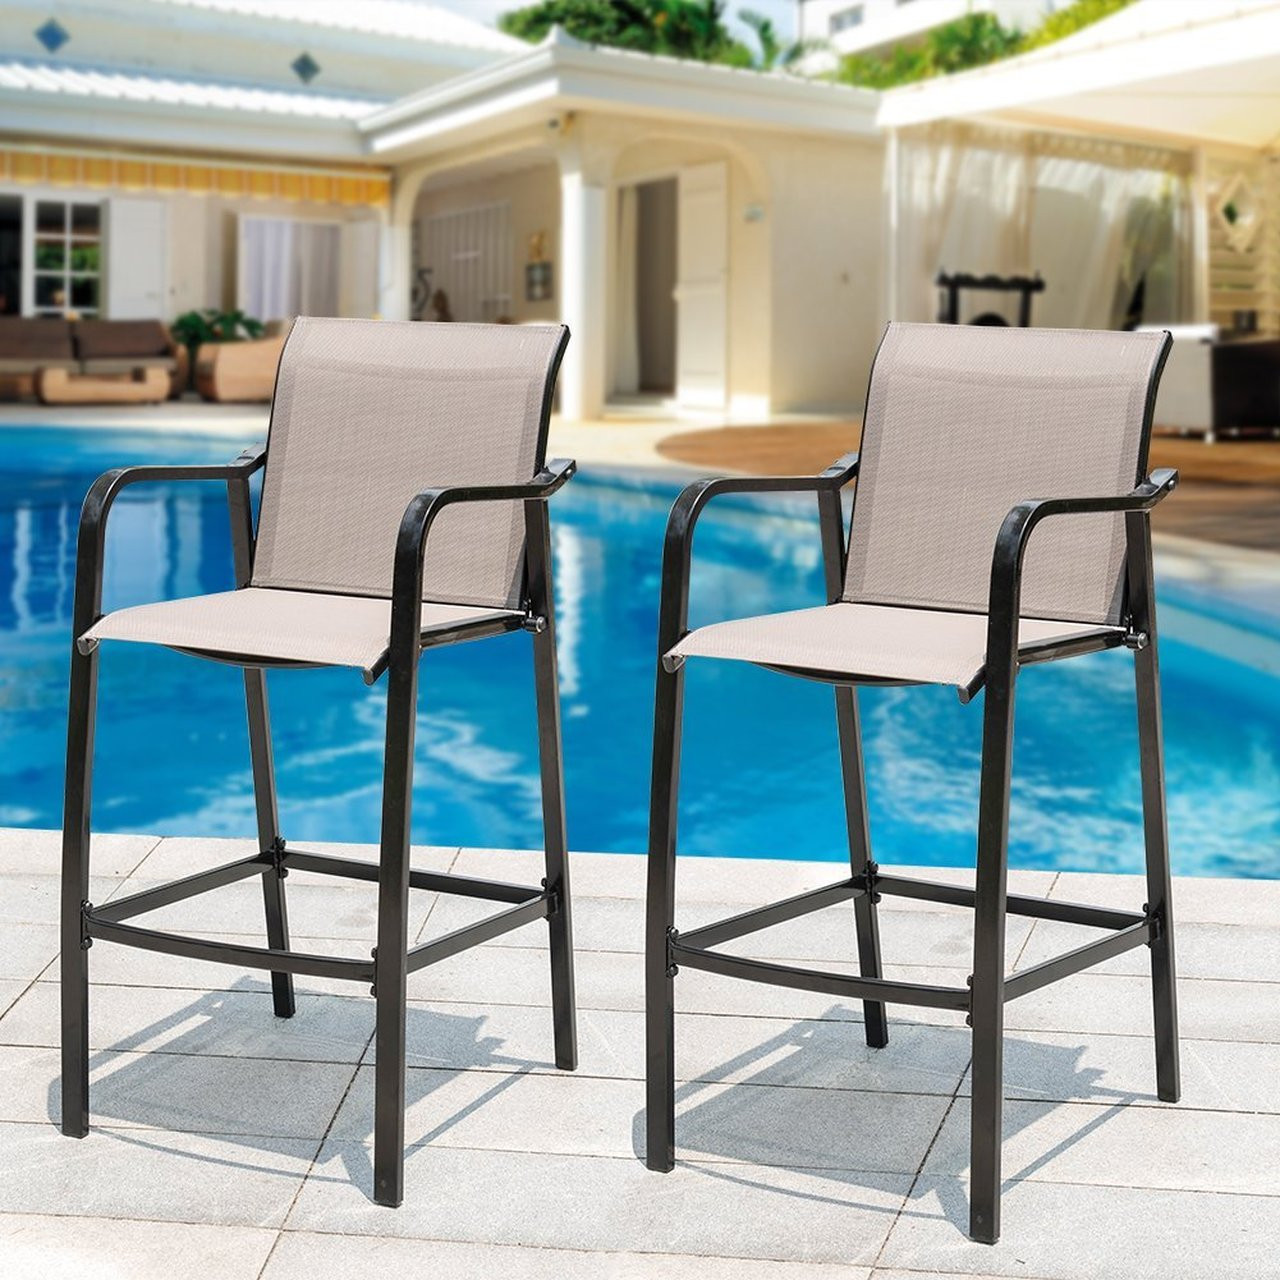 Best ideas about Bar Height Patio Furniture . Save or Pin Sundale Outdoor Counter Height Bar Stool All Weather Patio Now.